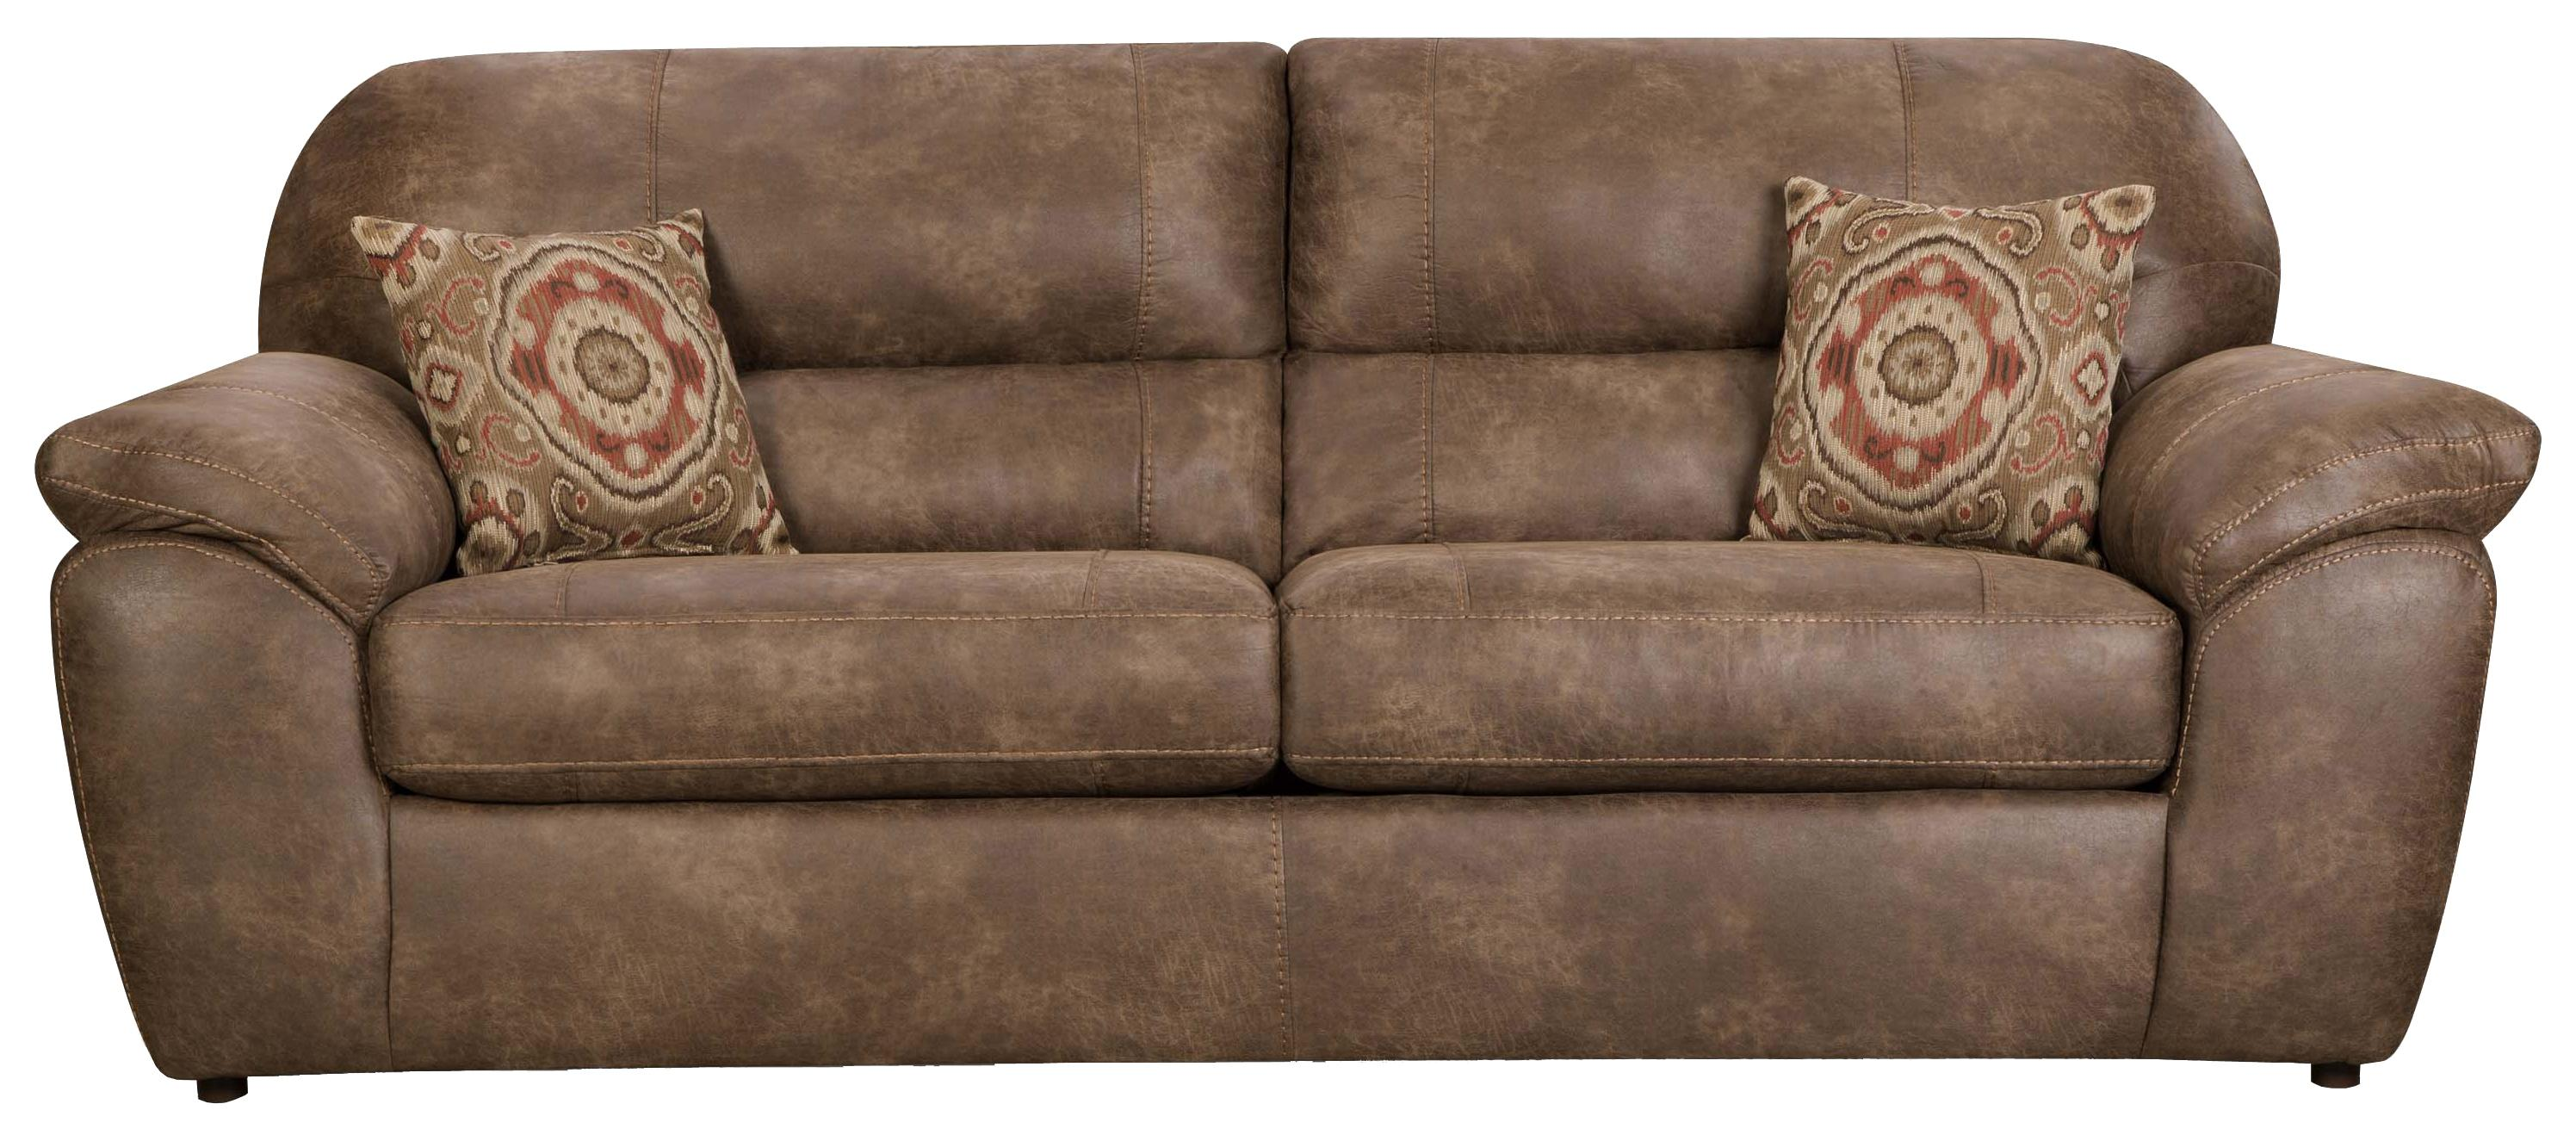 18A0 Sofa by Corinthian at Story & Lee Furniture